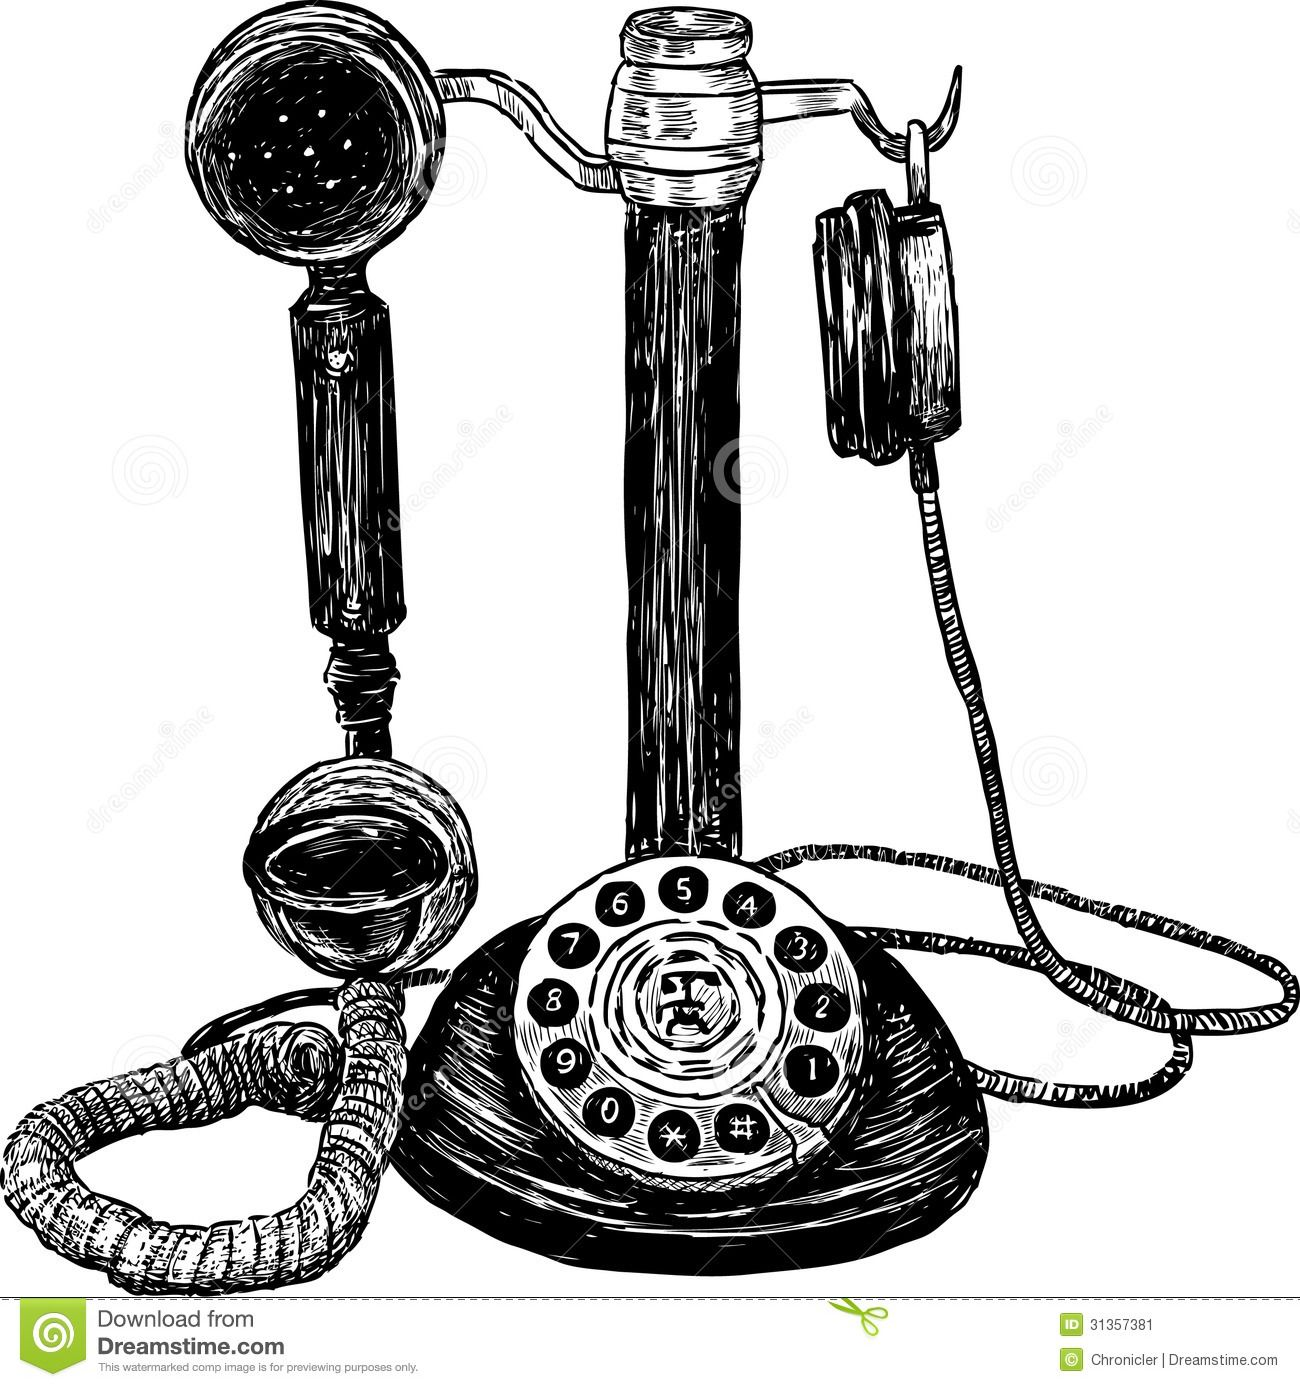 Image Result For Drawing Of Old Fashioned Telephone